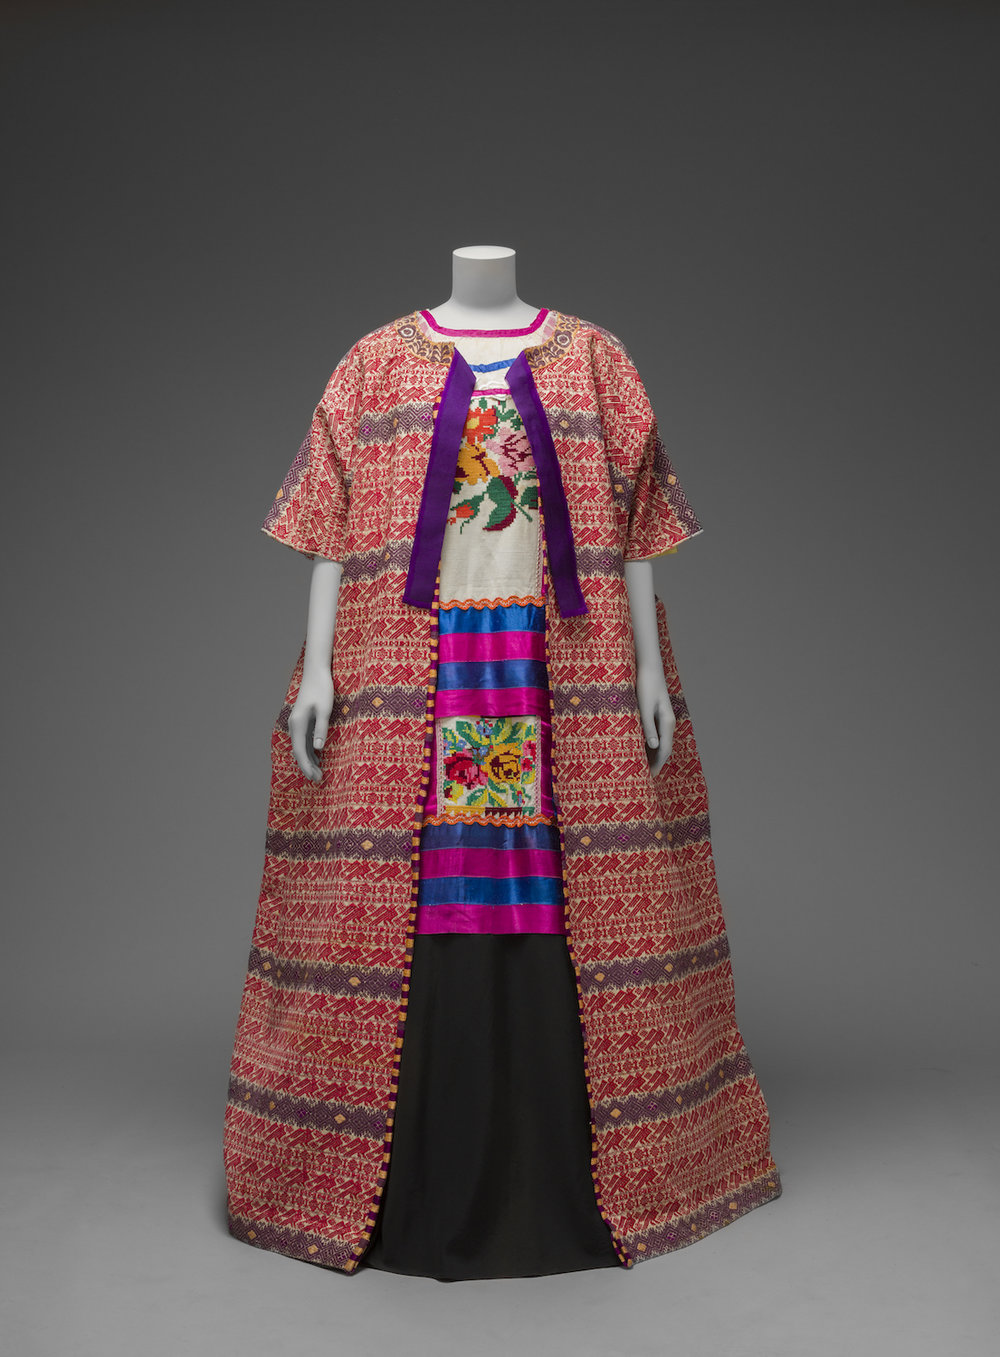 Guatemalan cotton coat worn with Mazatec huipil and plain floor- length skirt Museo Frida Kahlo. © Diego Rivera and Frida Kahlo Archives, Banco de México, Fiduciary of the Trust of the Diego Riviera and Frida Kahlo Museums.